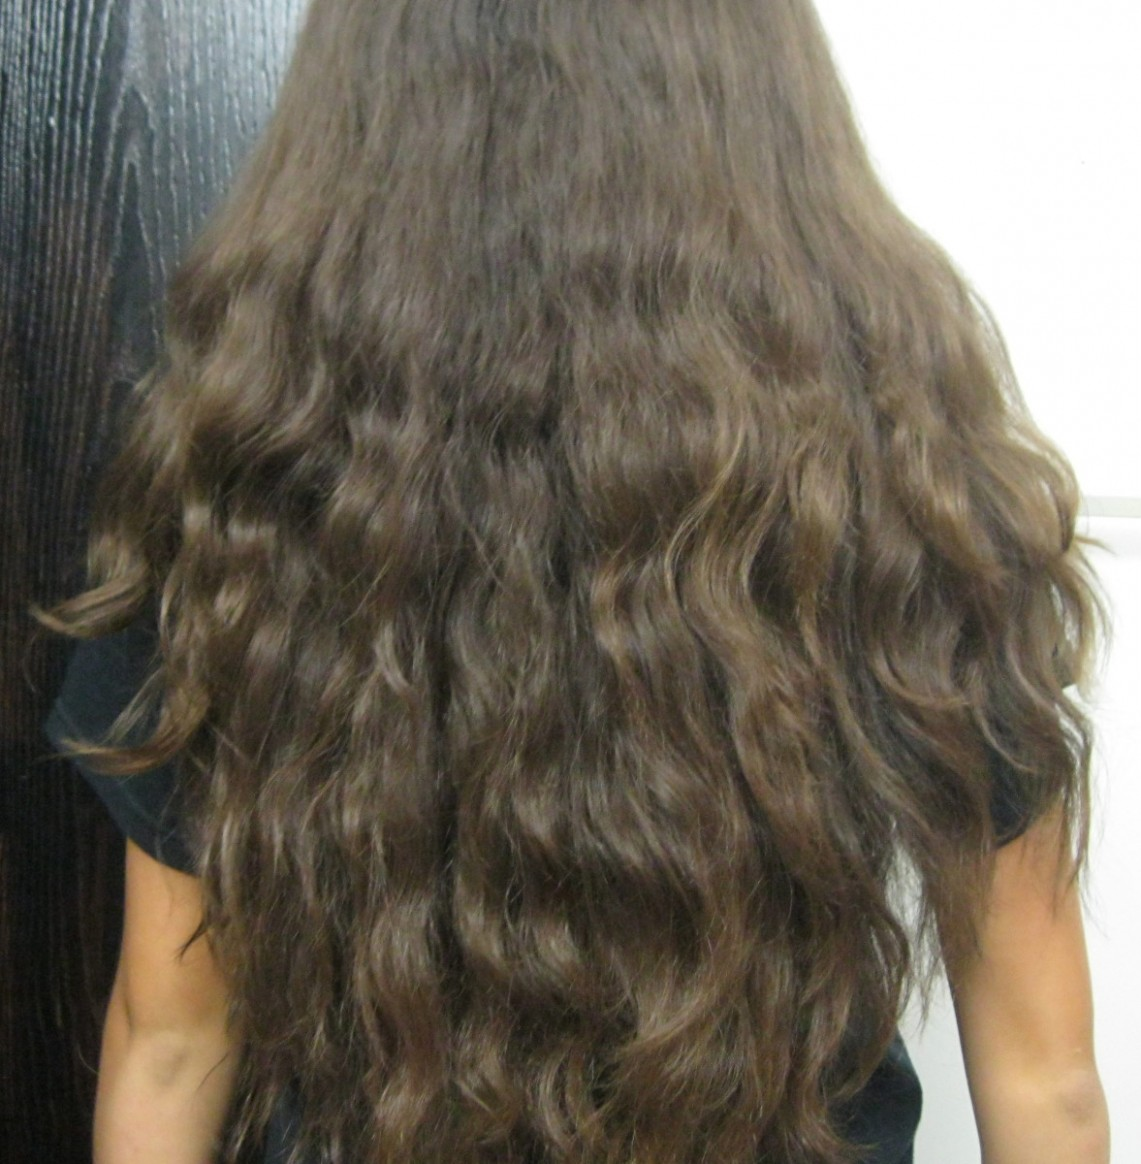 Wavy Hairstyles: Best Cuts And Styles For Long, Naturally Wavy U Cut For Curly Hair